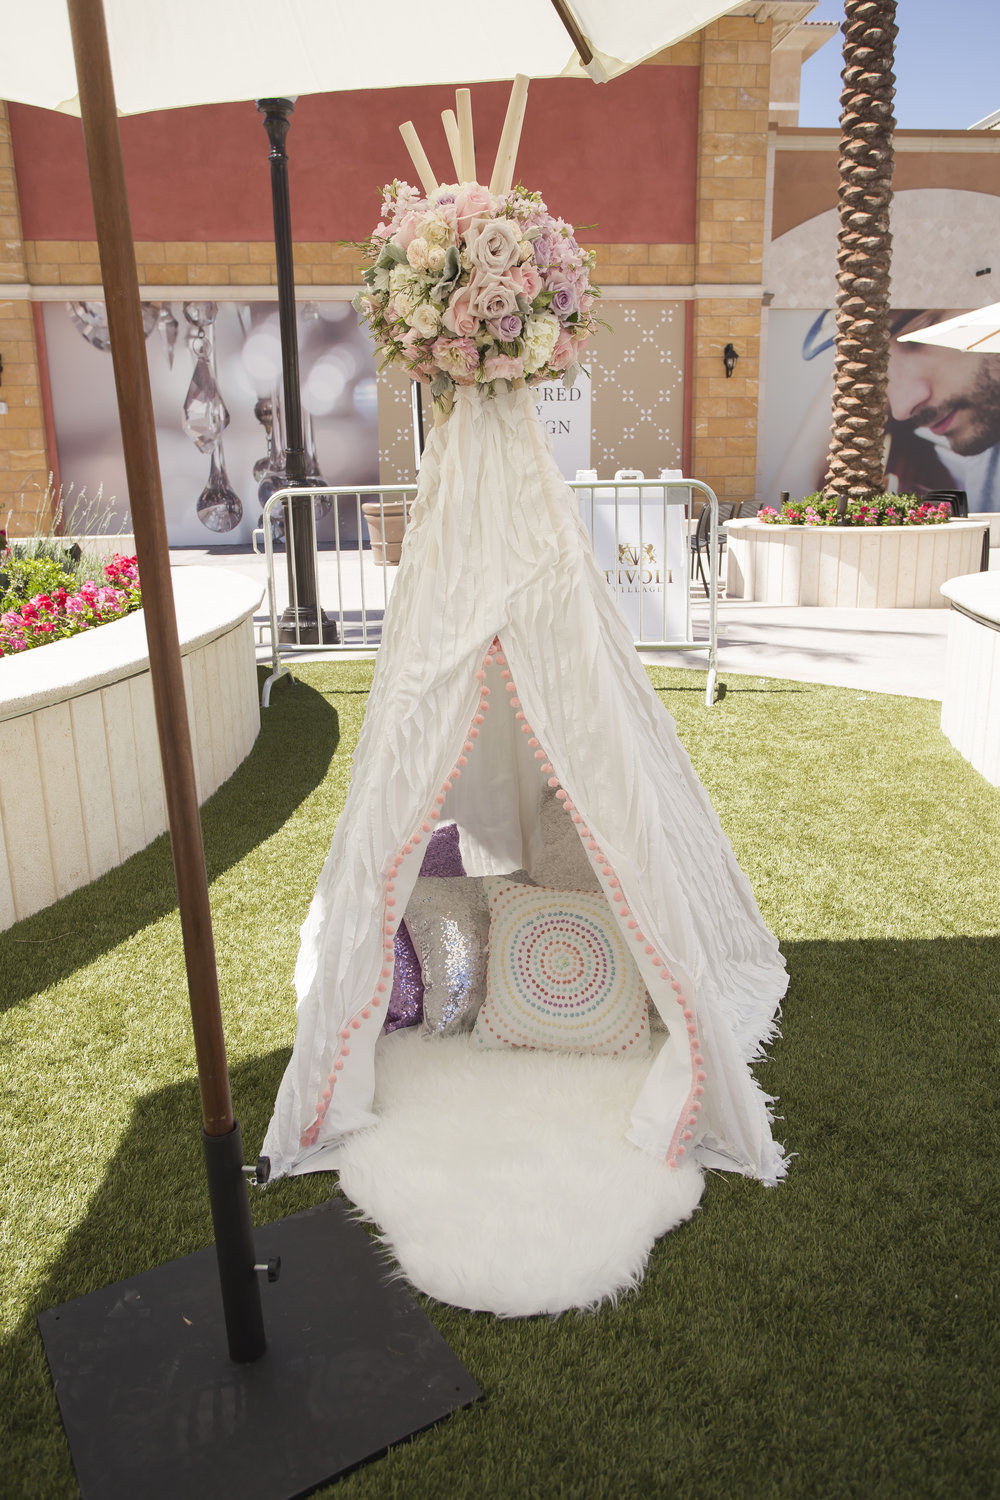 Individual teepee trimmed with fur and topped with pastel roses for Azari's first birthday party. Celebrity Event Planner Andrea Eppolito.  Floral and Rentals by Destinations by Design. Photo by Triple Vision Studios.